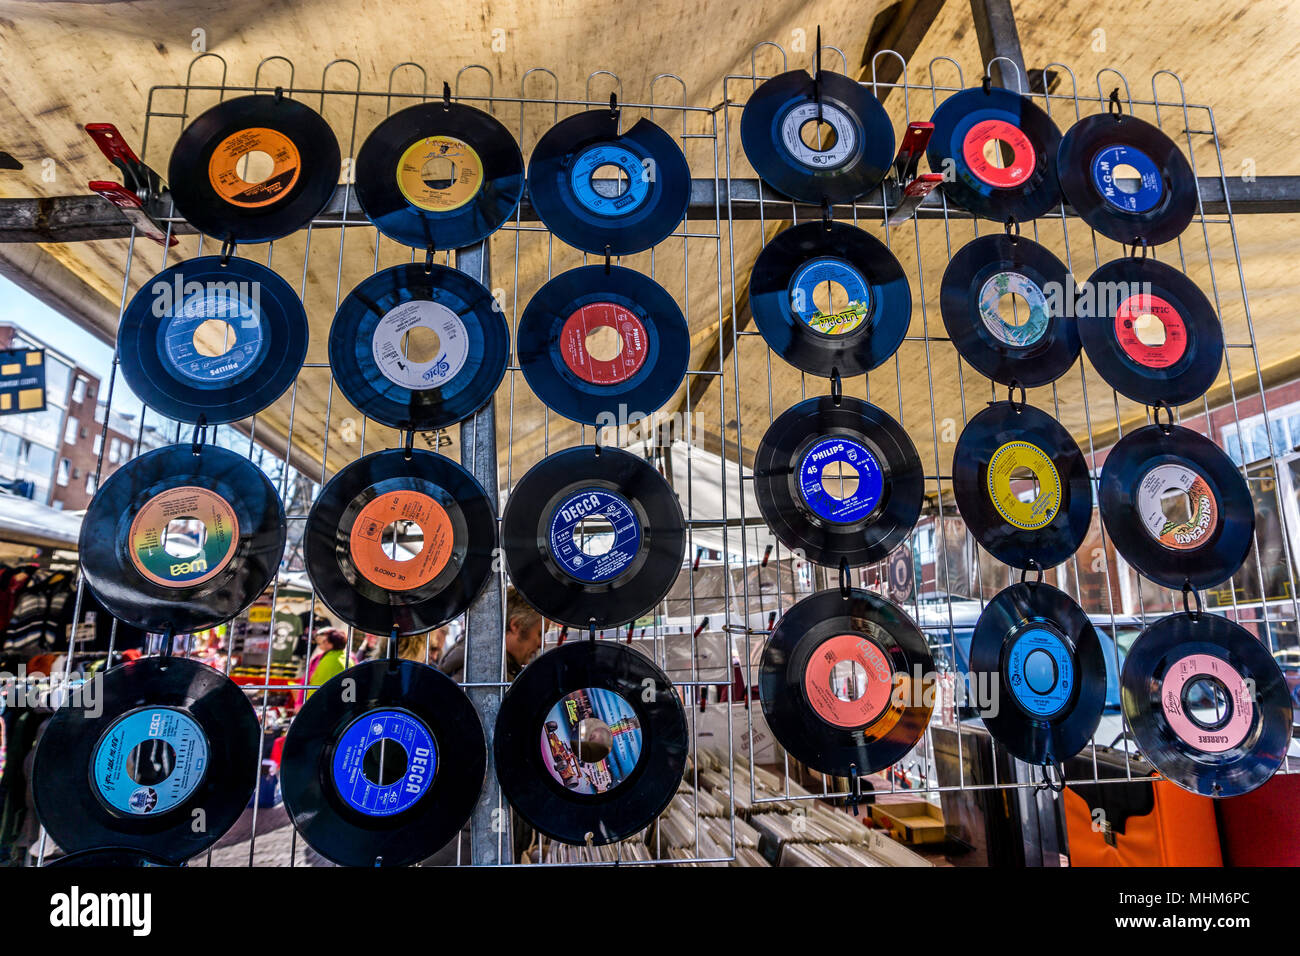 7 Inch vinyl records on display on a market stall, Amsterdam